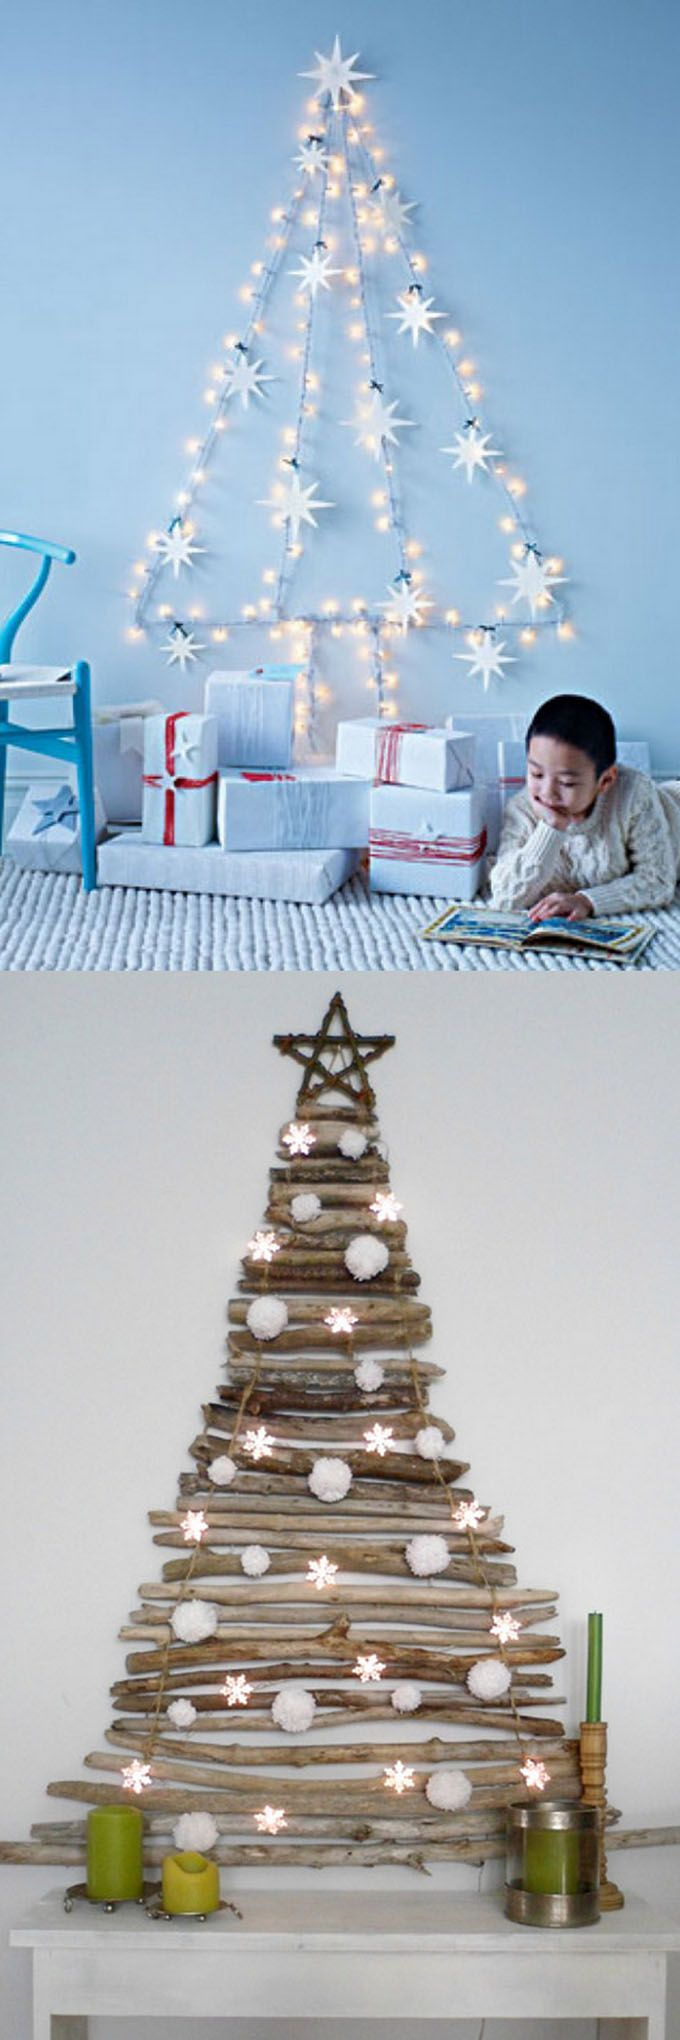 Unique christmas tree decorations - 18 Unconventional And Beautiful Diy Christmas Trees Ideas To Create Unique Christmas Decorations For Your